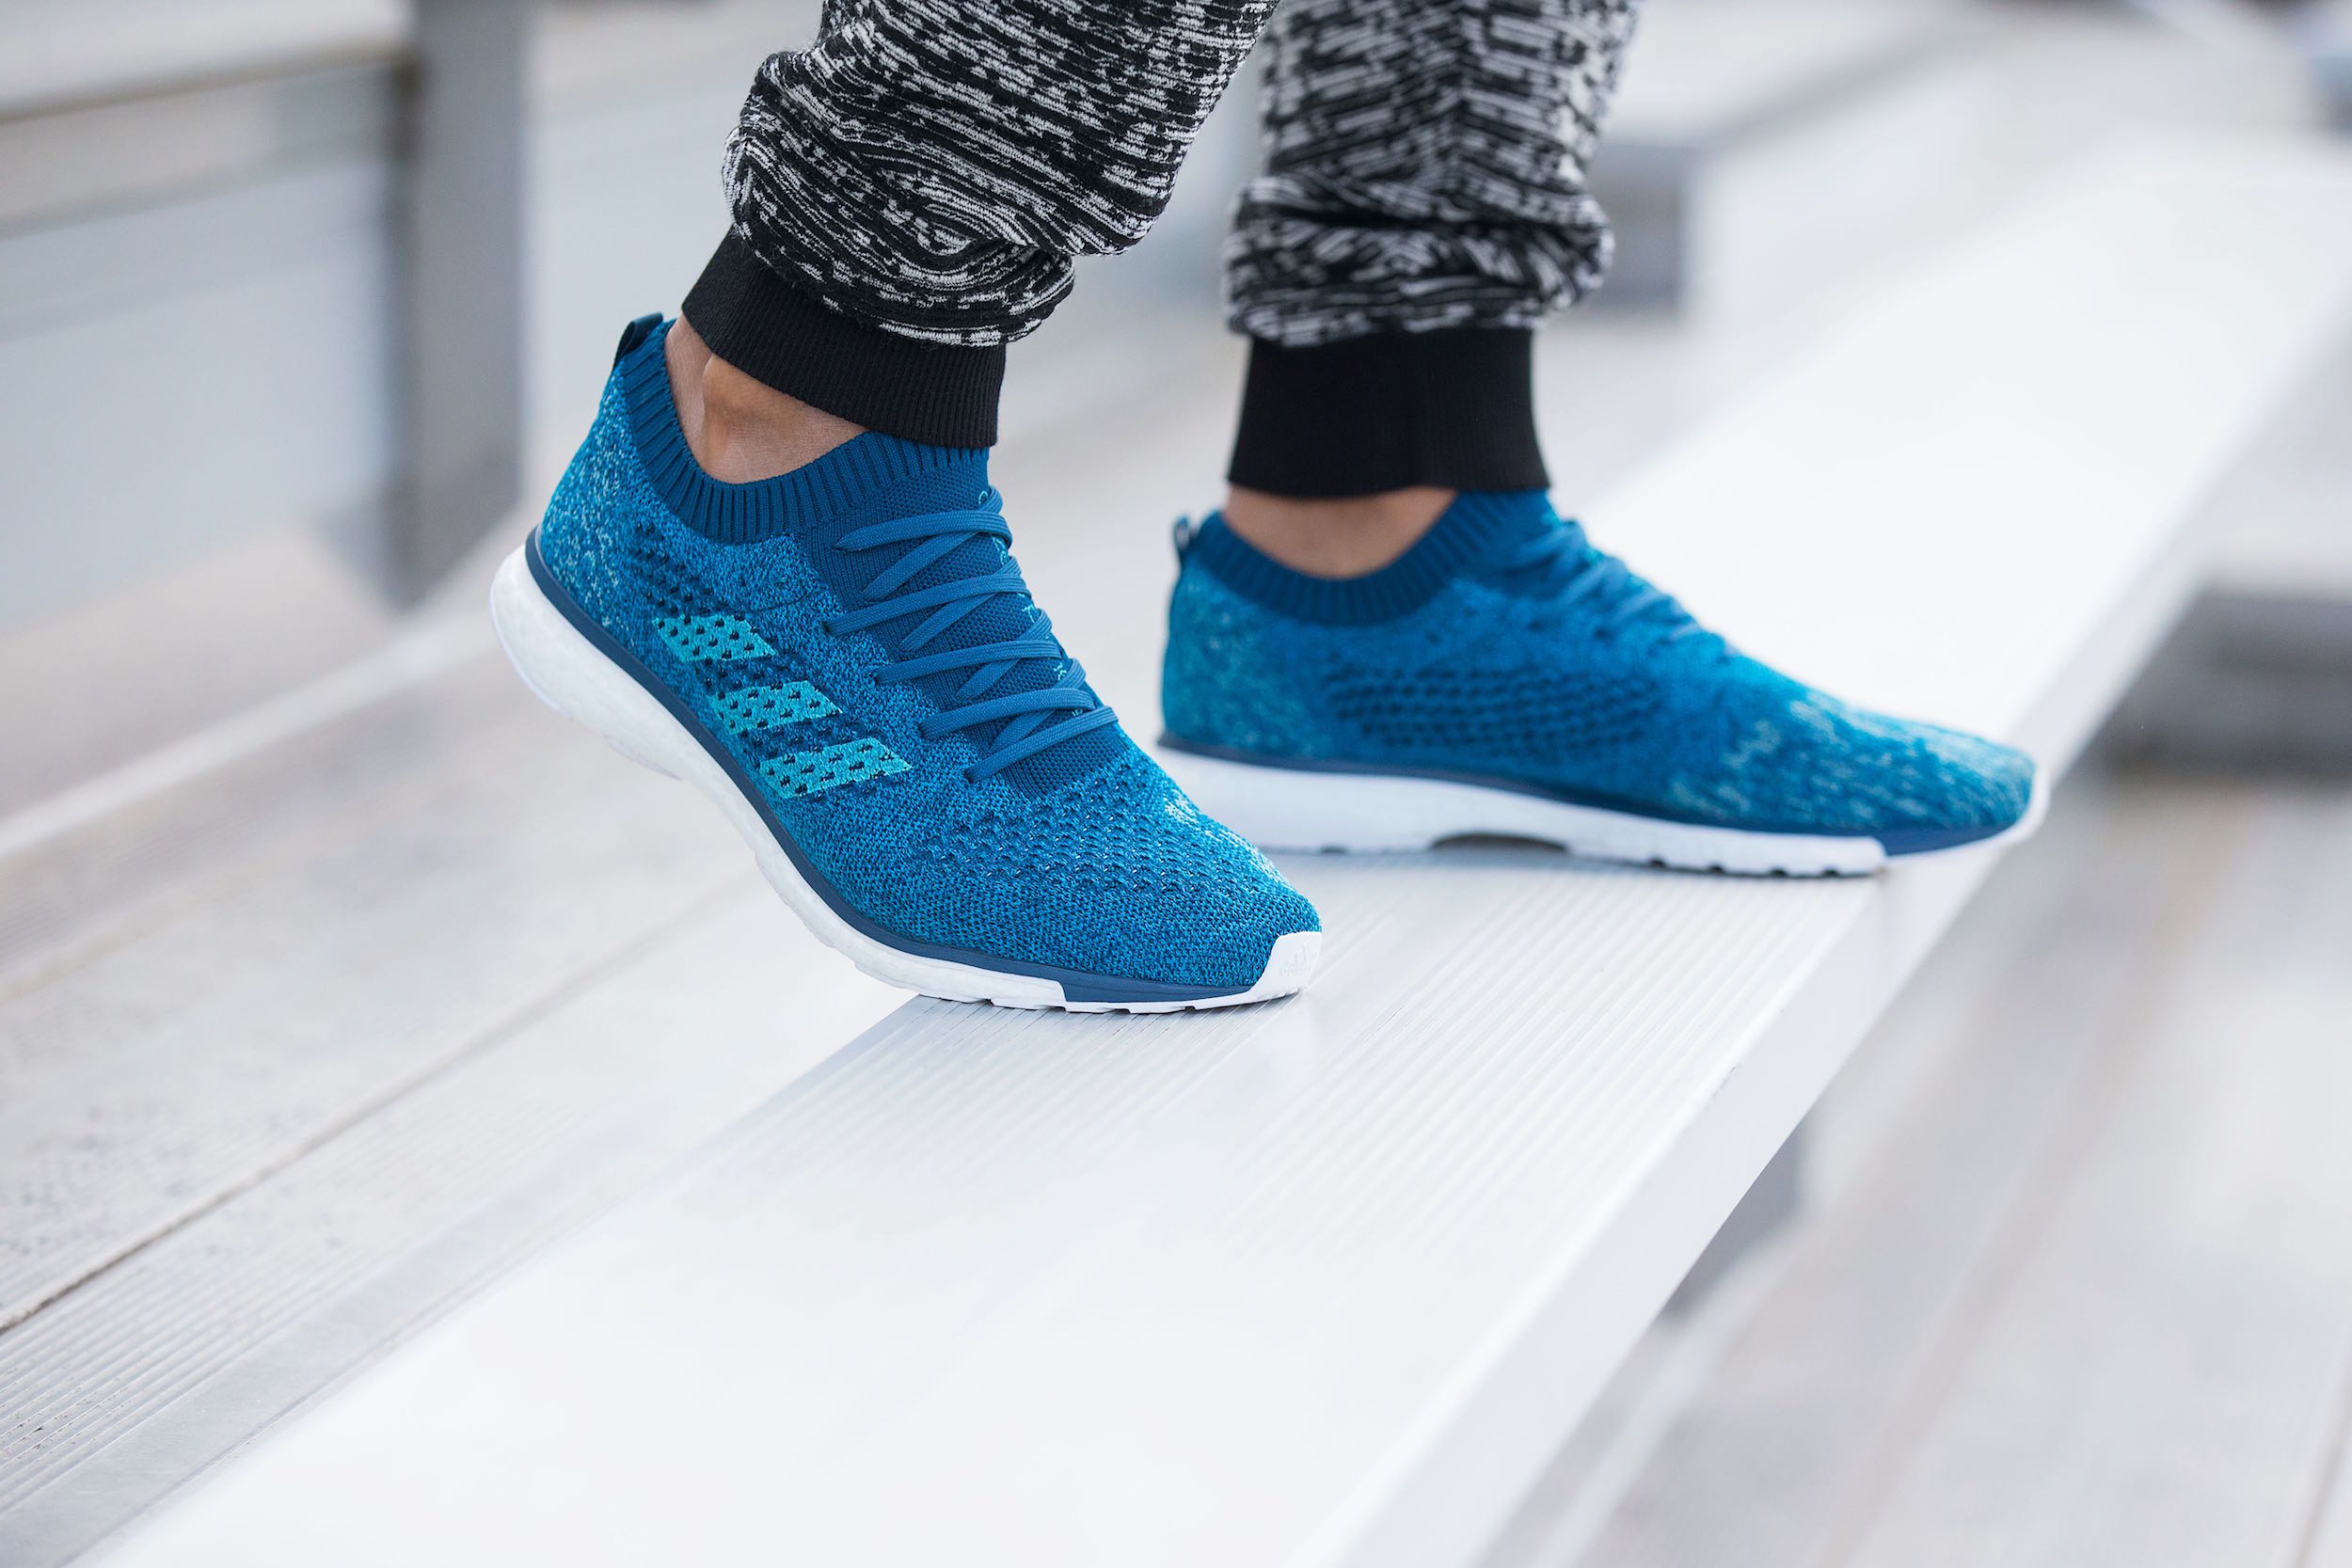 timeless design 4572f aeecb adidas adizero prime parley for the oceans On-foot